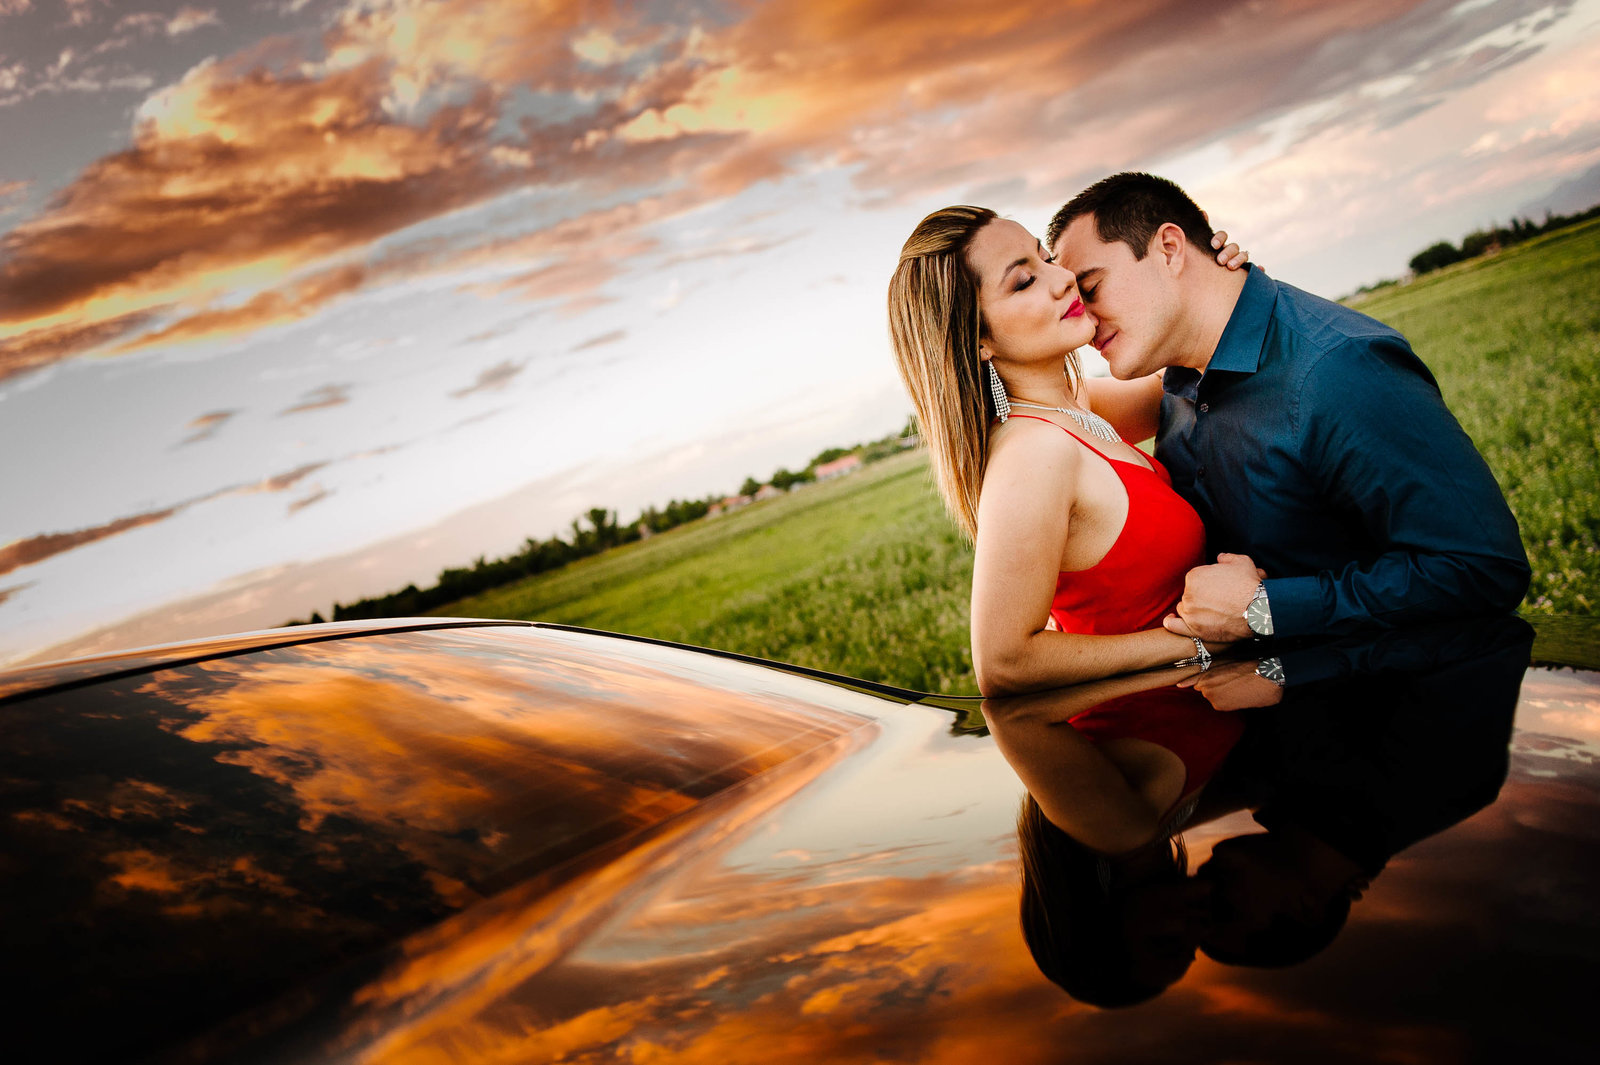 054-El-paso-wedding-photographer-El Paso Wedding Photographer_E69